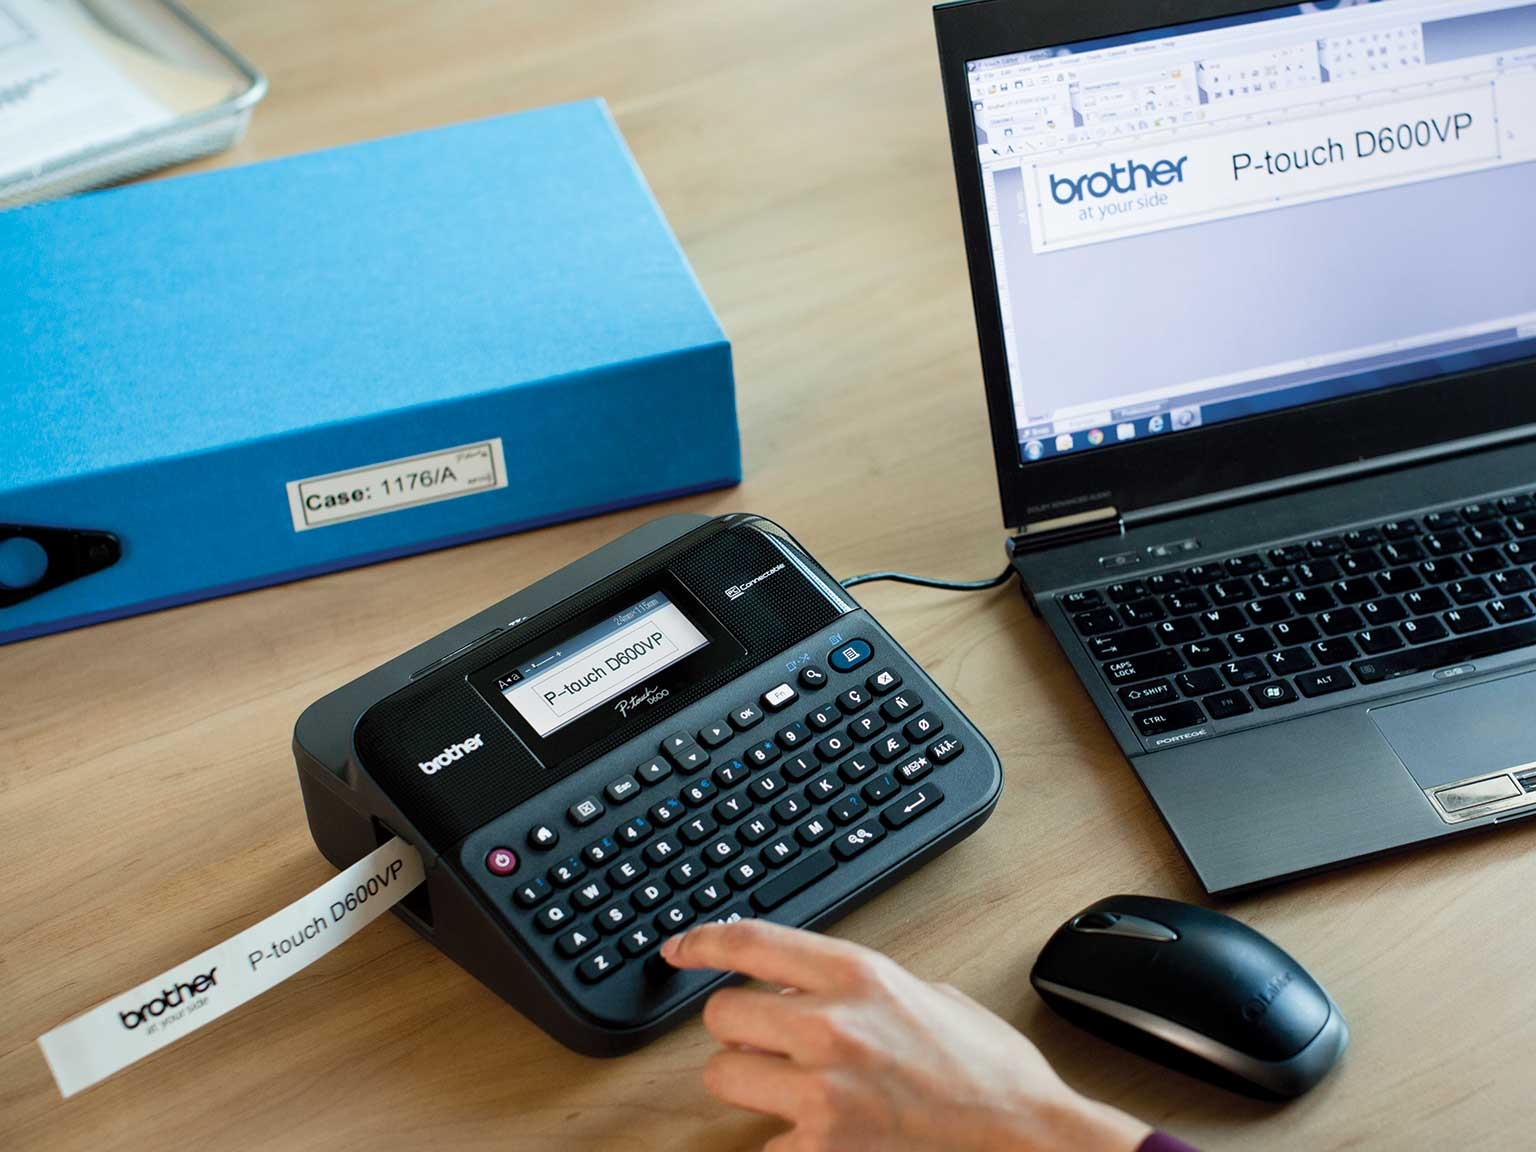 P-touch durable label printer on an office desk connected to a computer